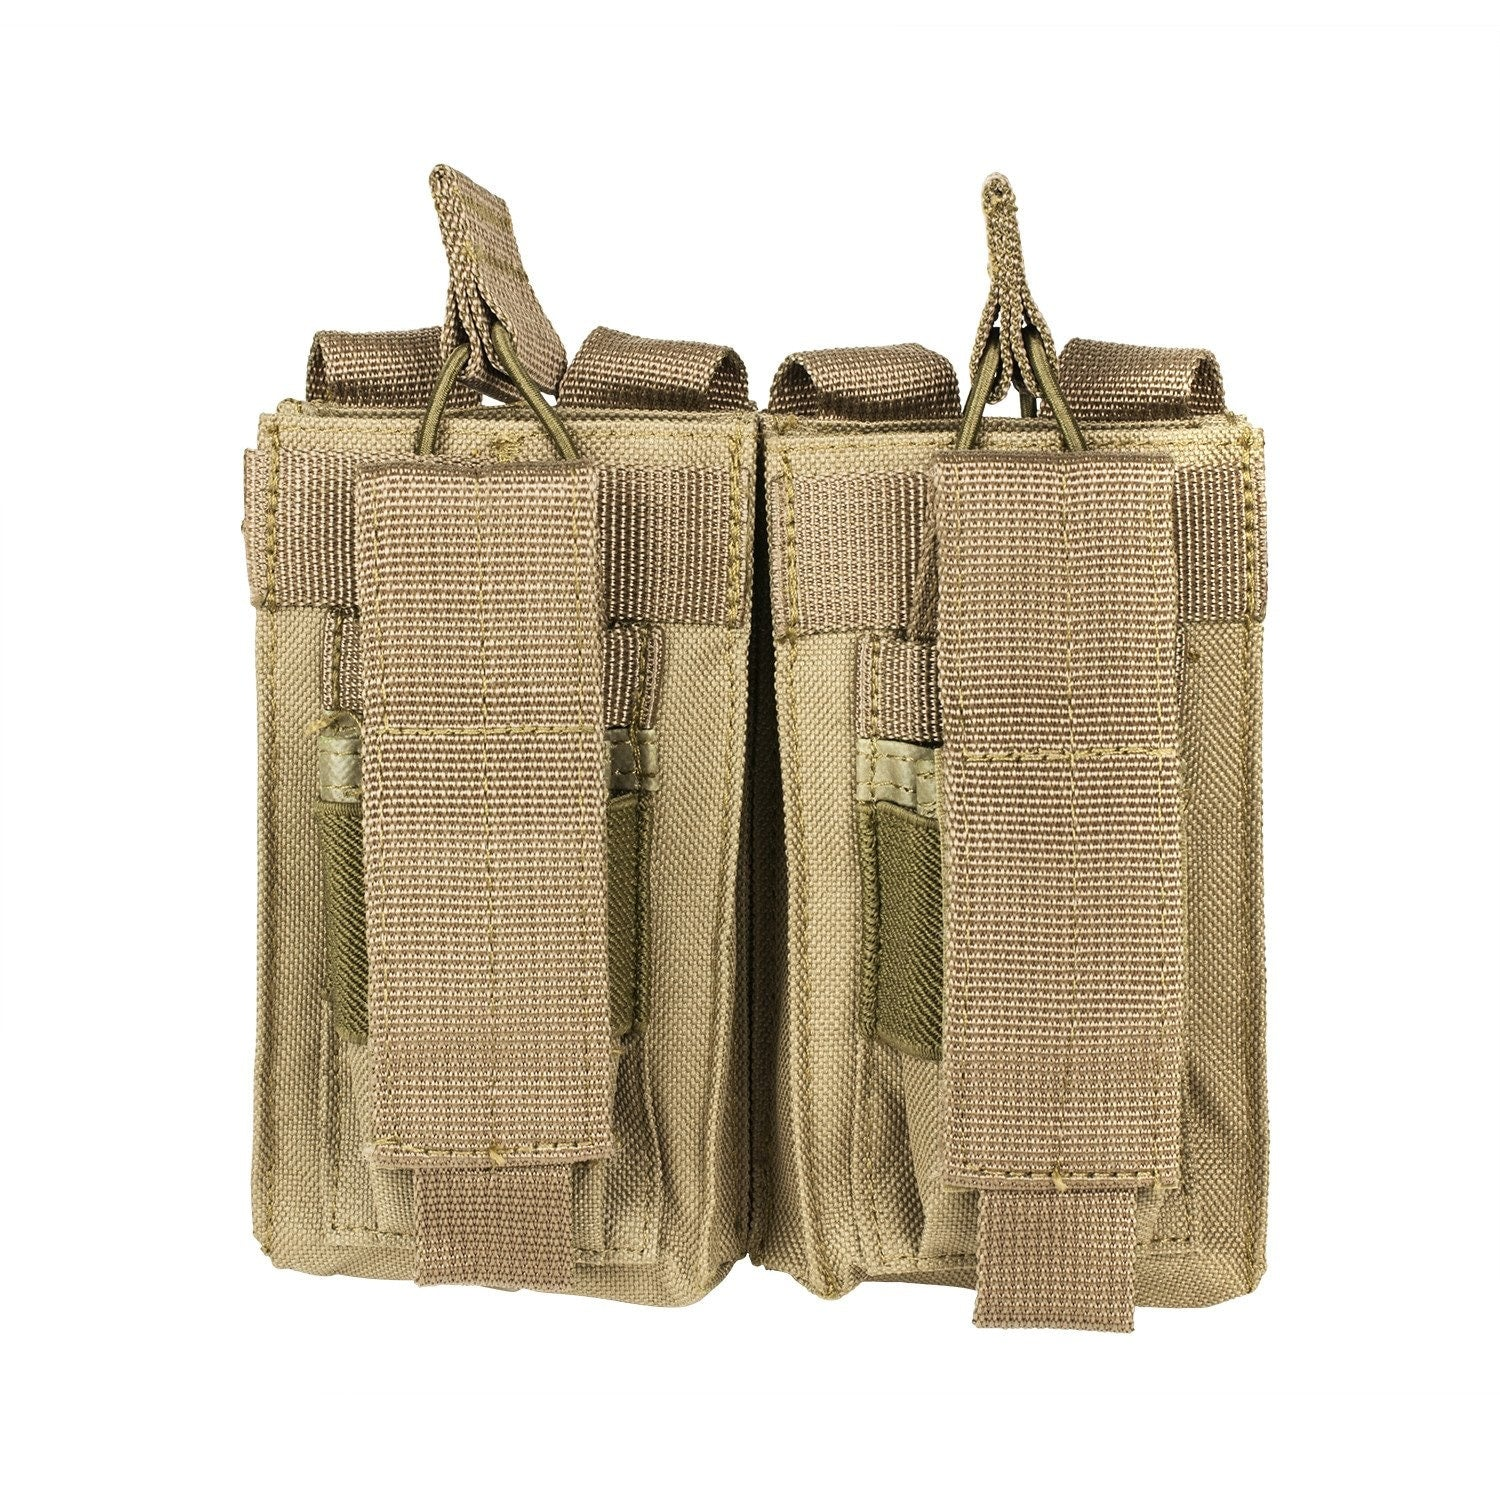 Ar Double Mag & Pistol Double Mag Kangaroo Pouch - Tan - Molle Pouches And Accessories - Vism - Colonel Mustard